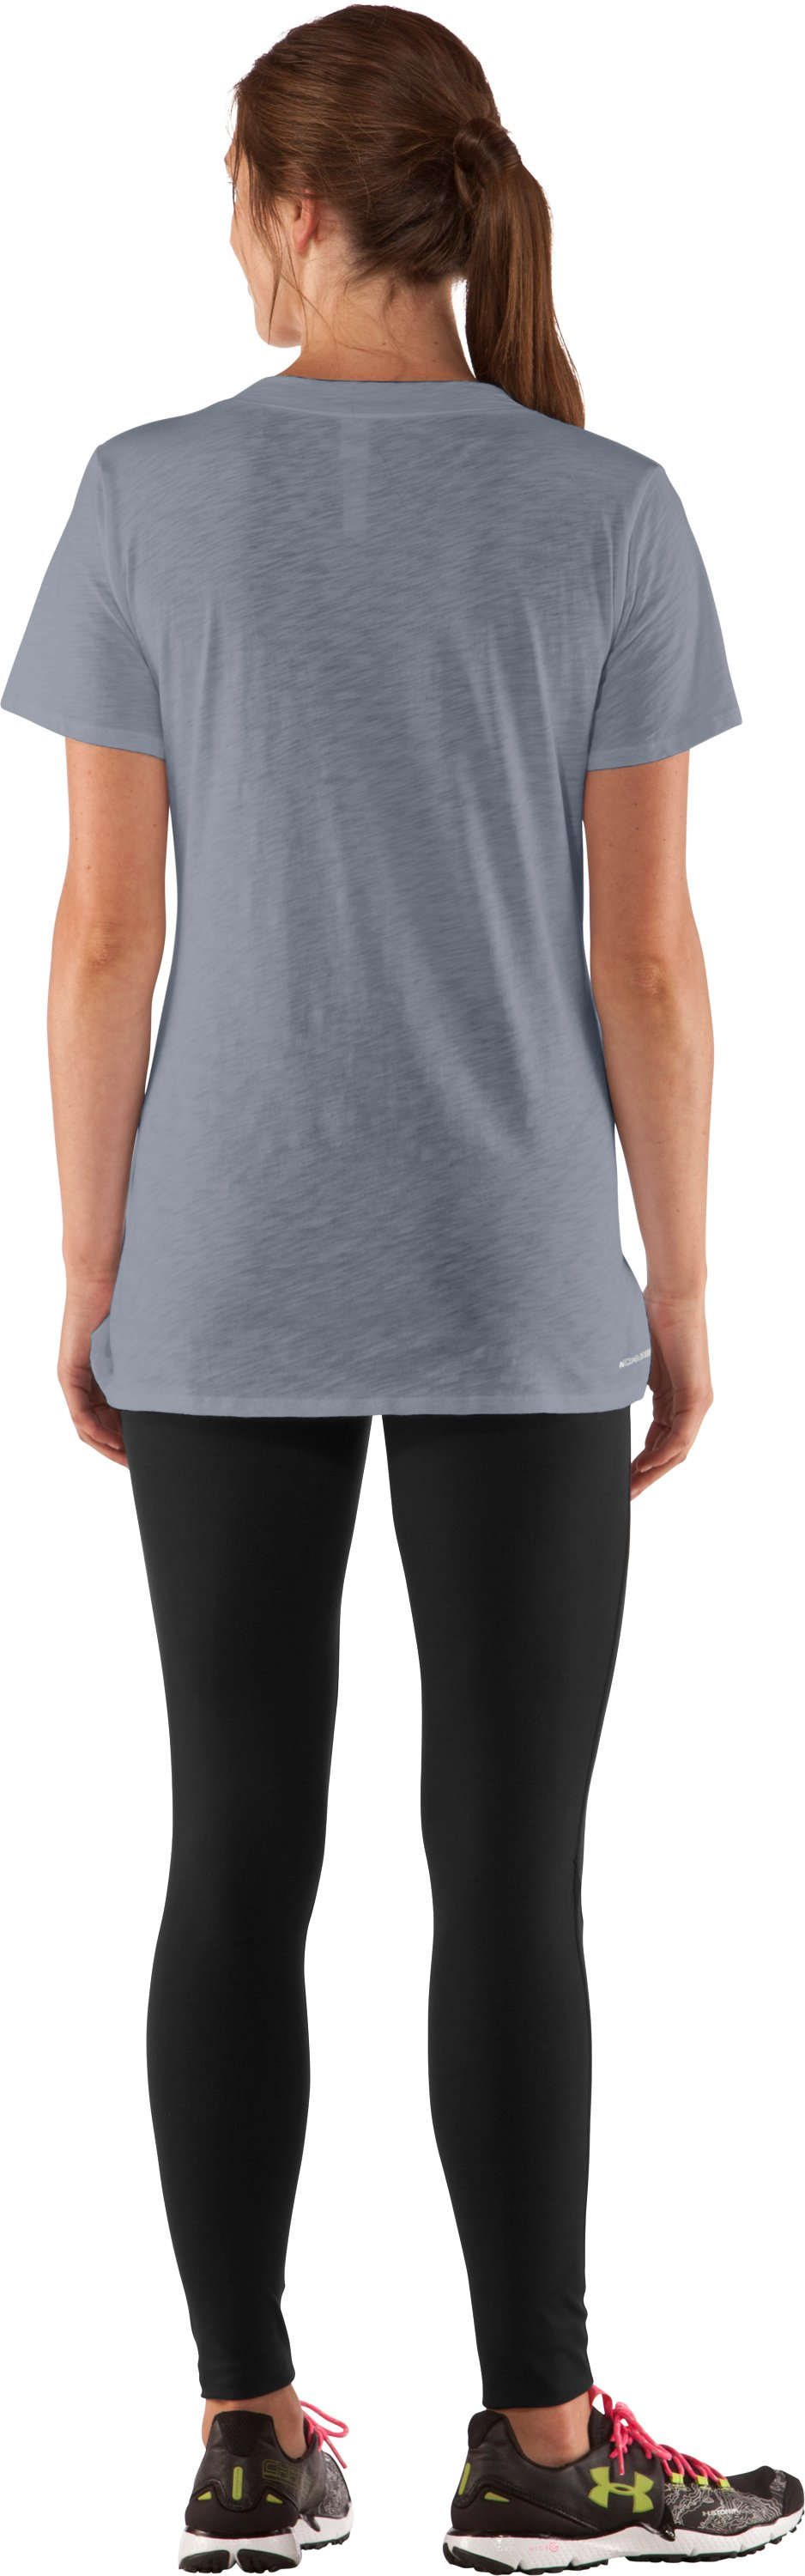 Women's Charged Cotton® Slub T-Shirt, Steel, Back